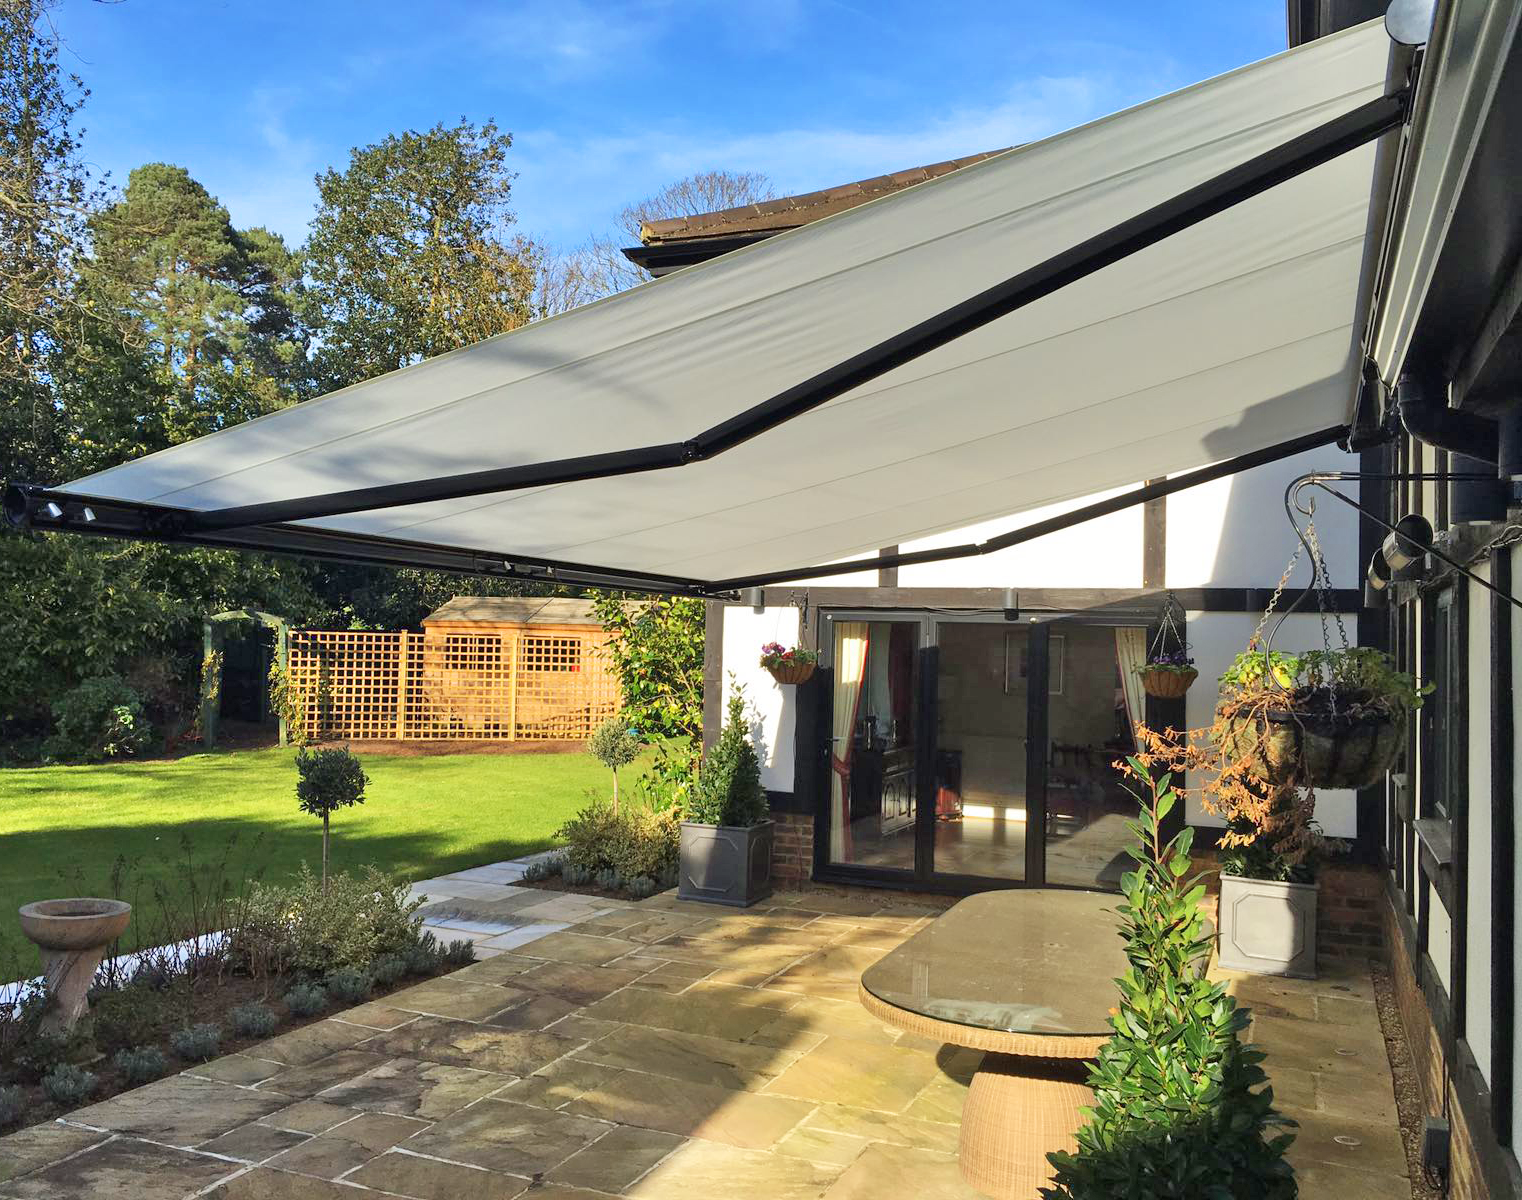 Stylish Retractable Awning For Shade And Shelter Garden Outdoor Retractable Awning House Awnings Pergola Shade